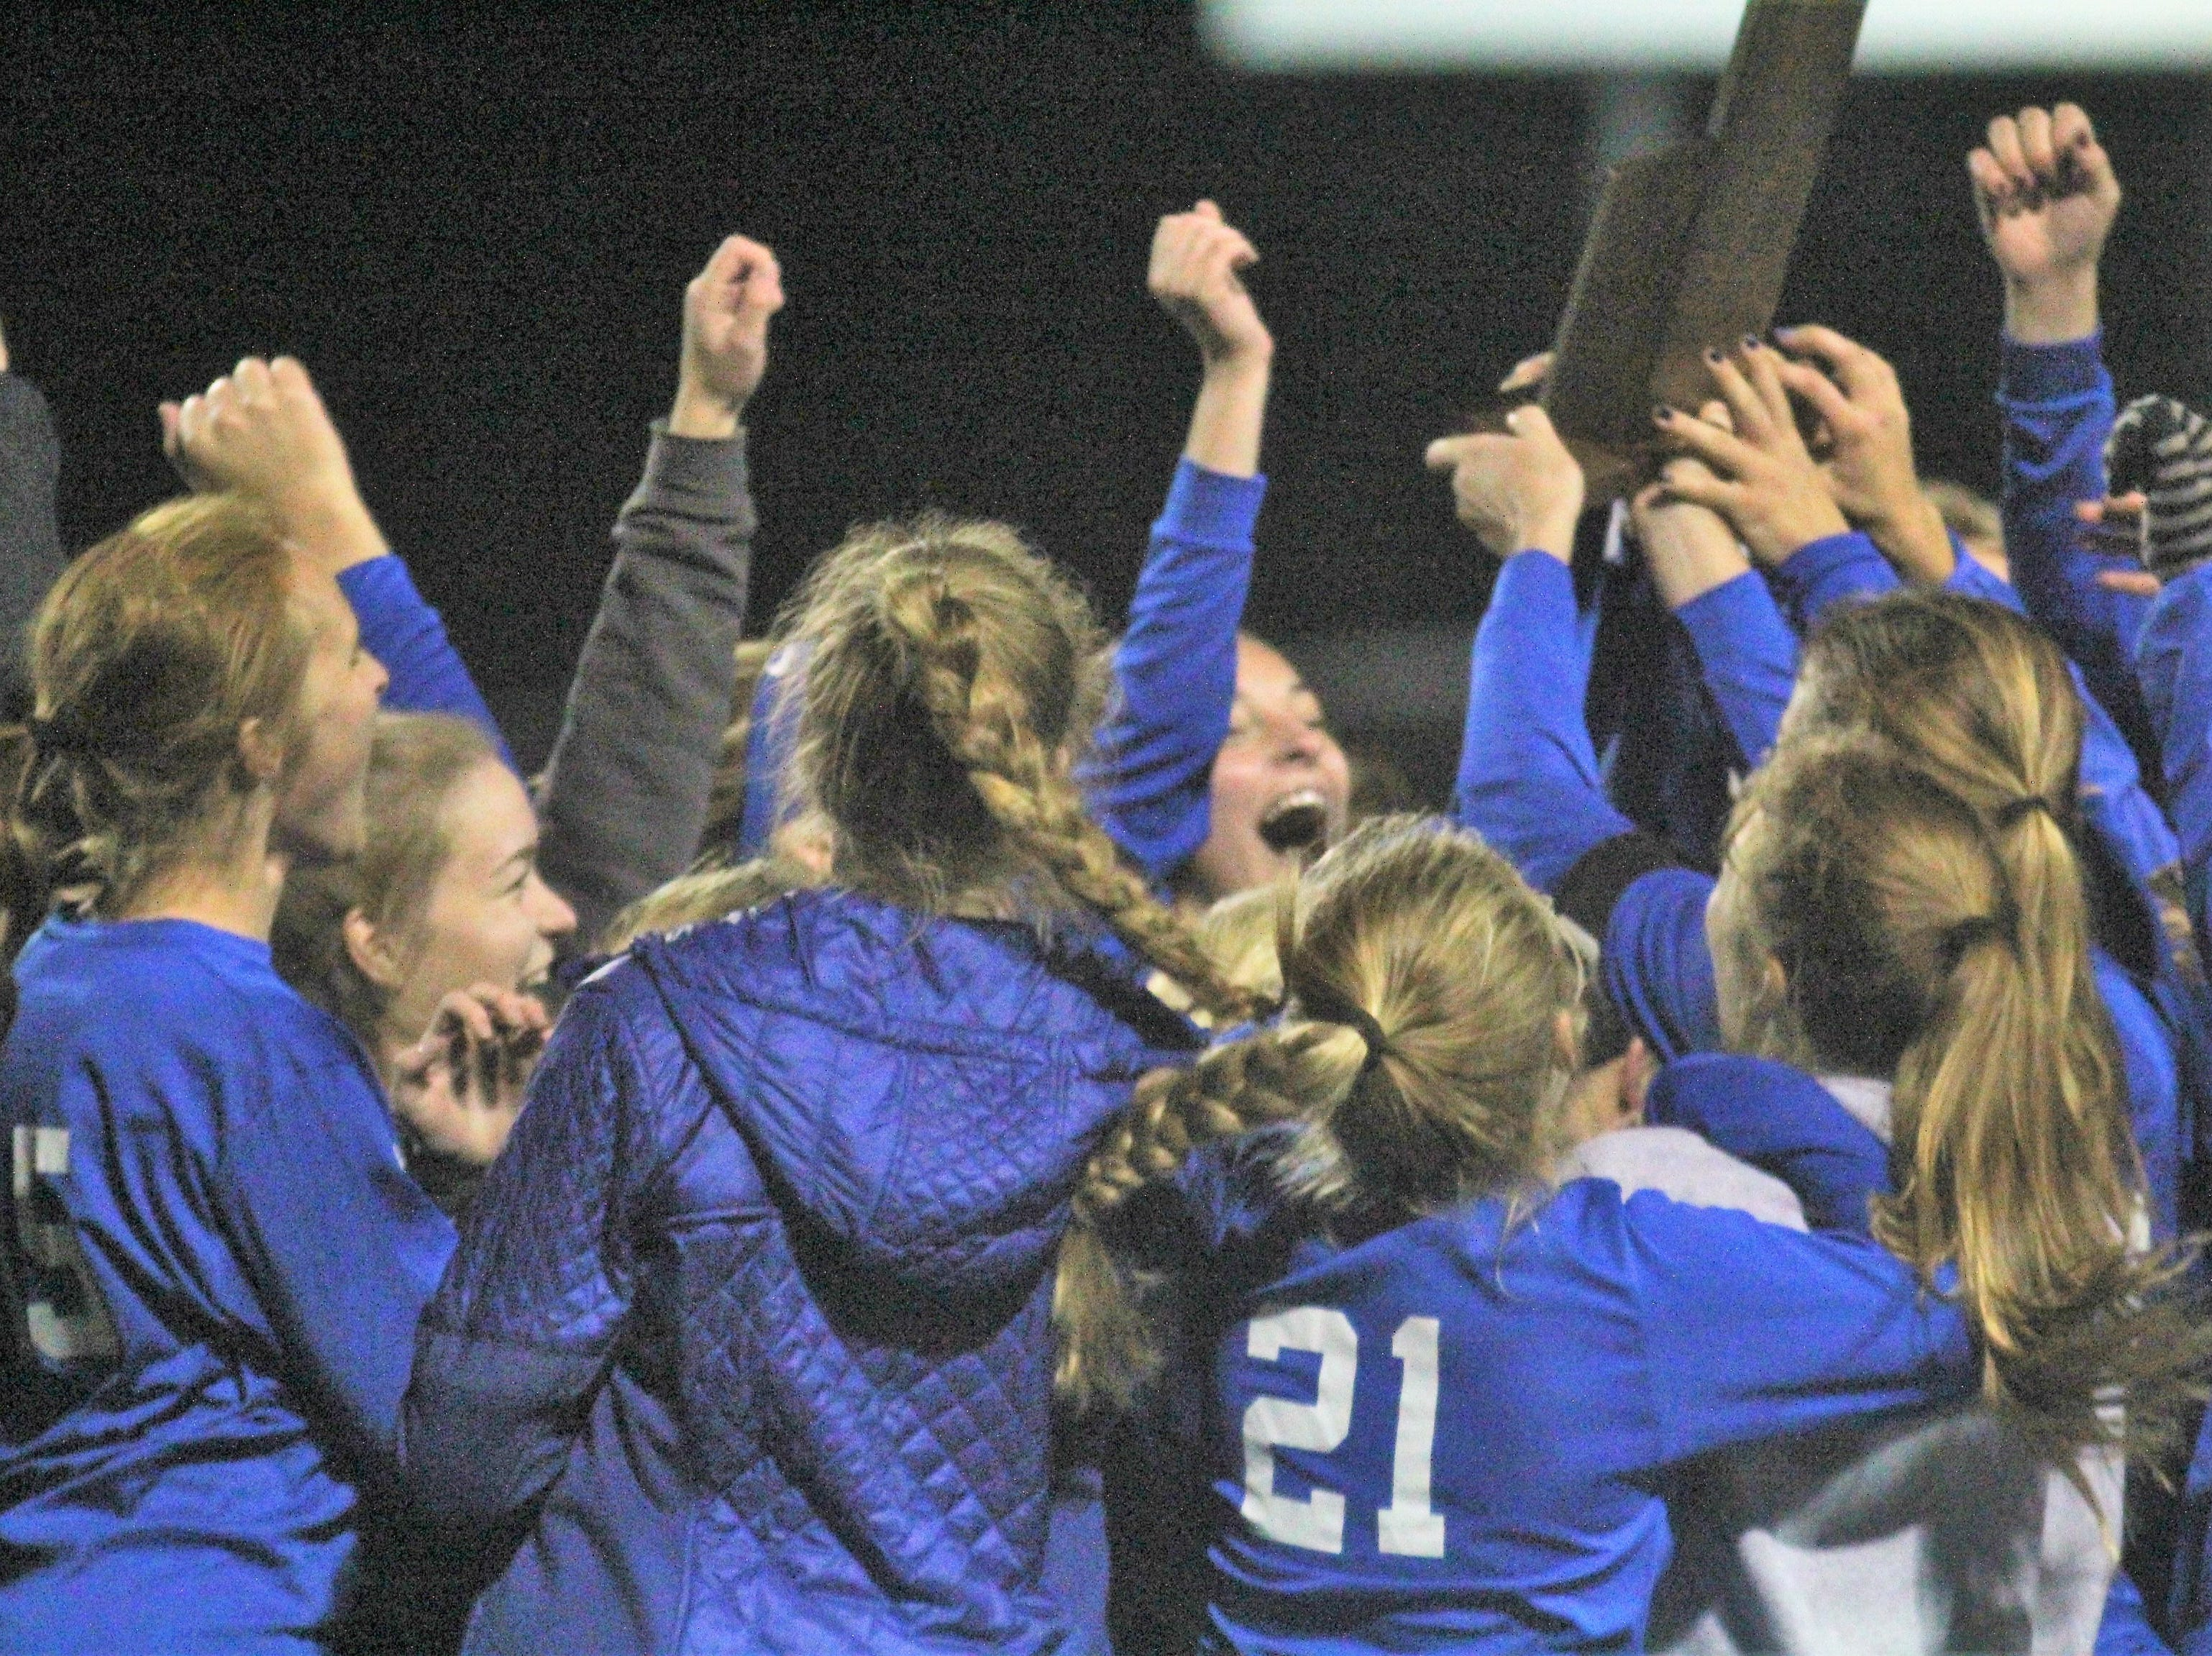 Highlands Bluebirds celebrate their win during Highlands' 1-0 win over Notre Dame in the 9th Region girls soccer championship game Oct. 18, 2018 at Ryle High School, Union, Ky.